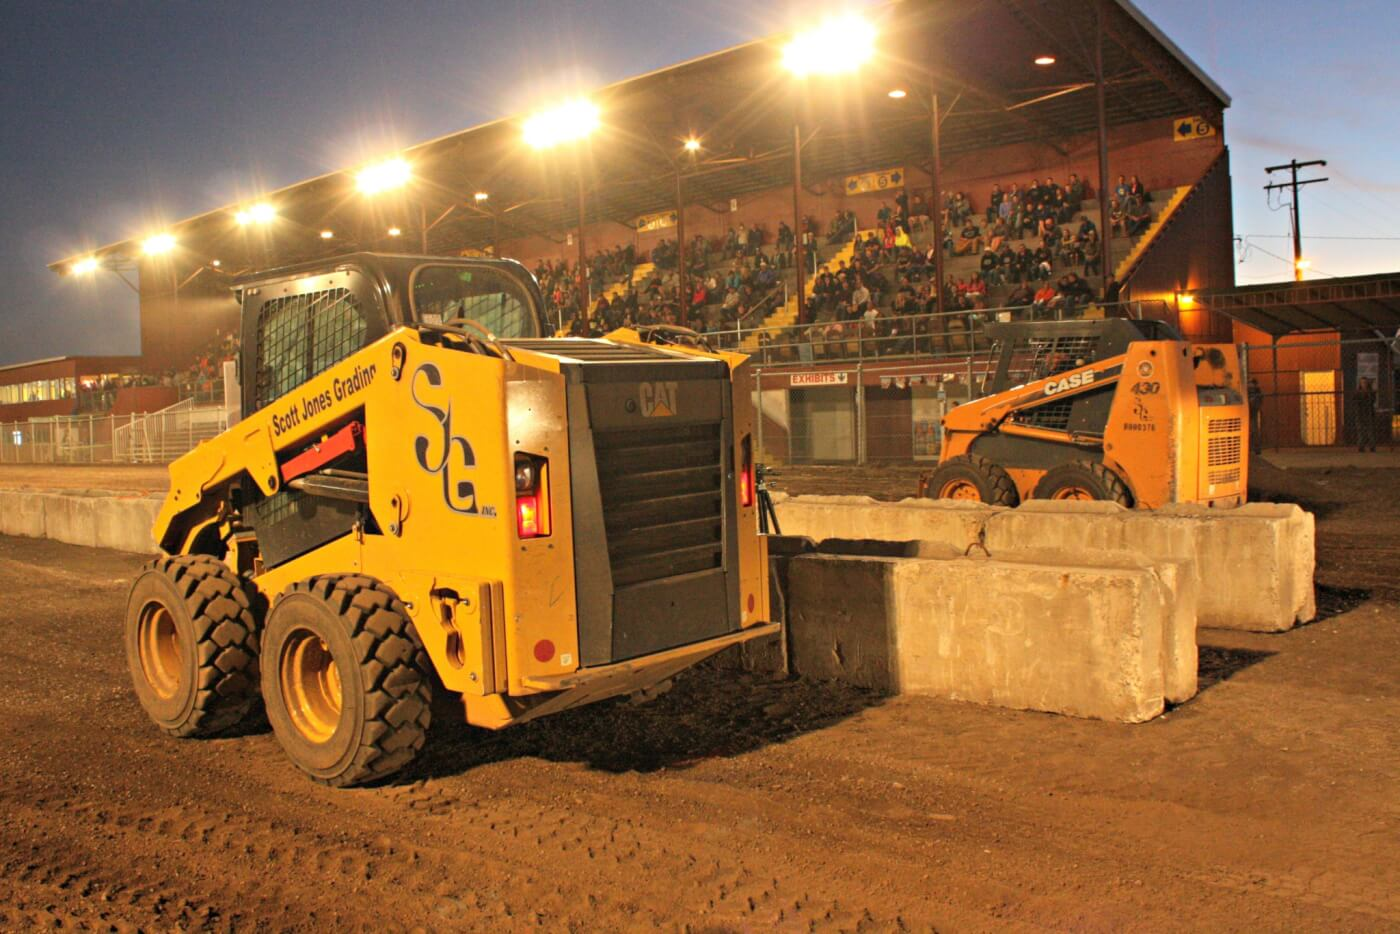 What would dirt drags be without a little skid/steer side-by-side action? With the front buckets off it was more of a wheelie fest than a drag race, but it definitely got the crowd's attention and was one of the best parts of the show.